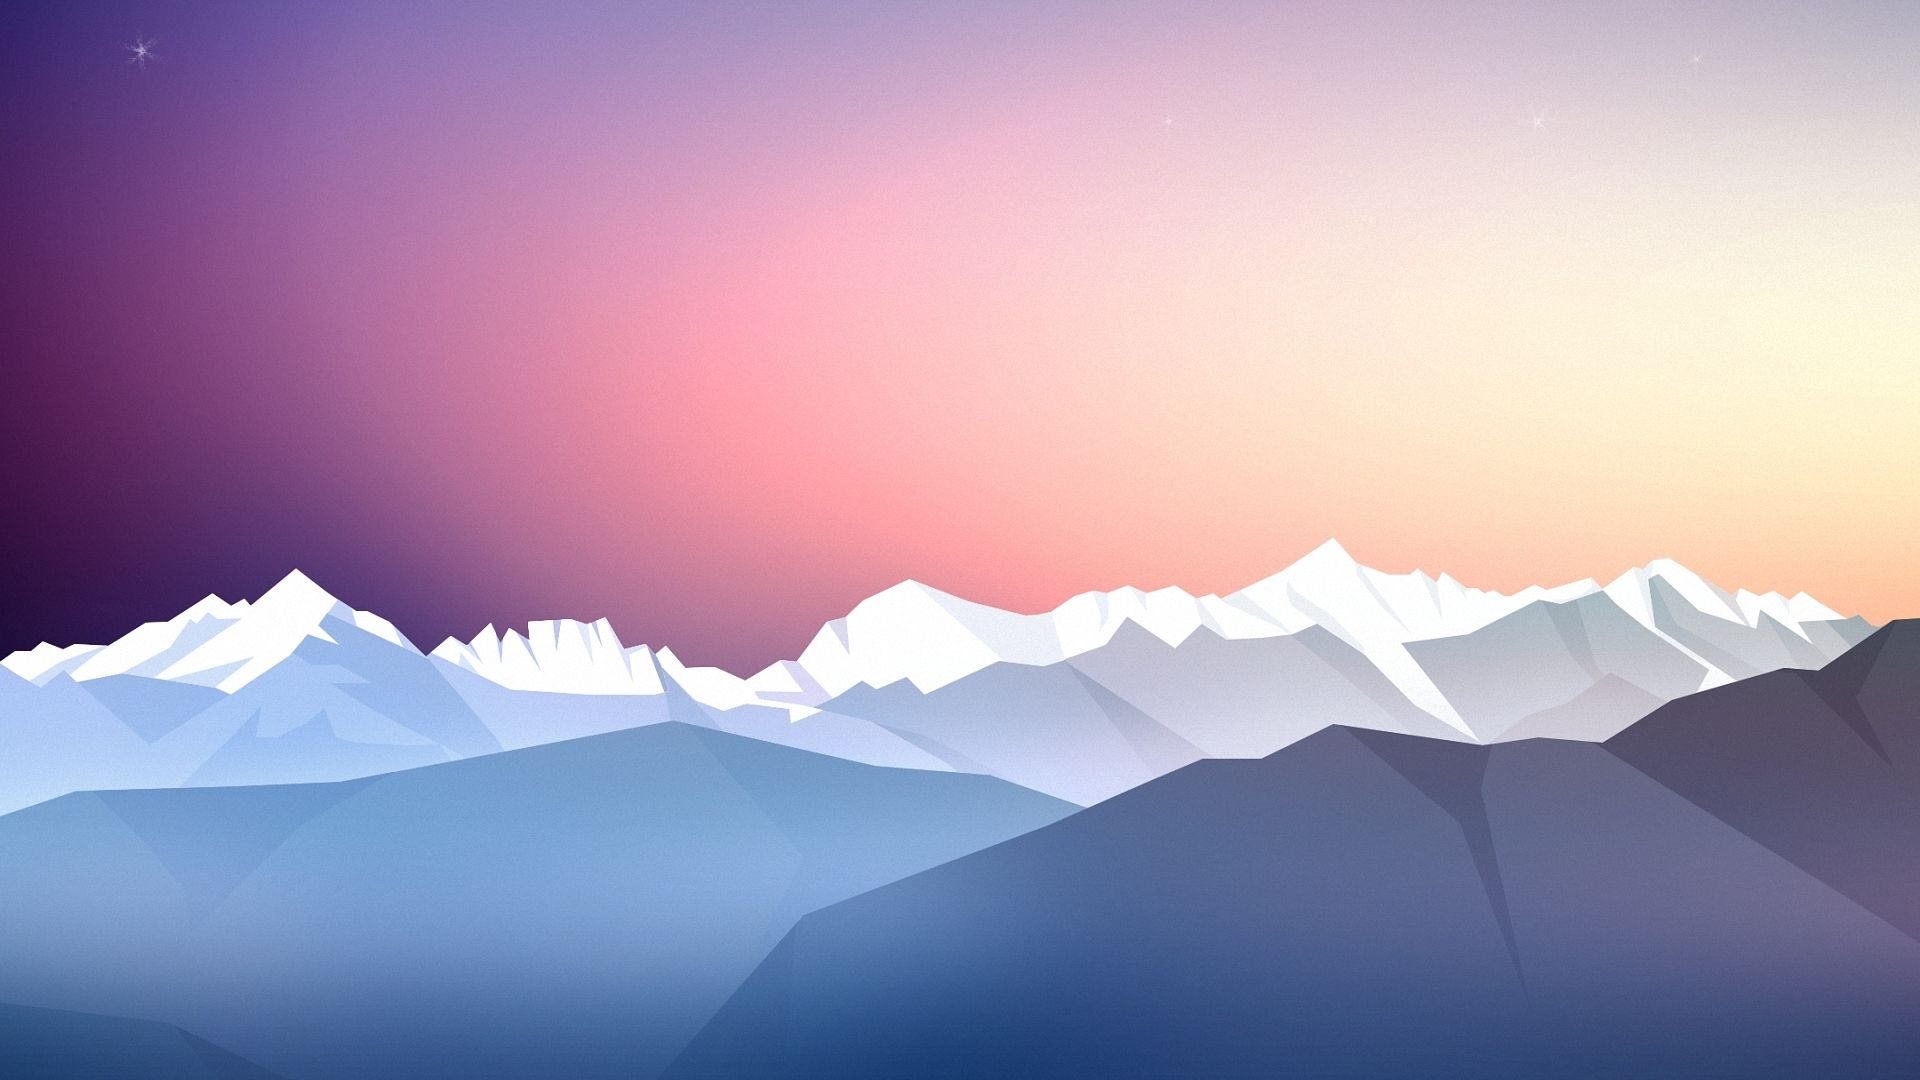 Free Mountain Vector 1080p background